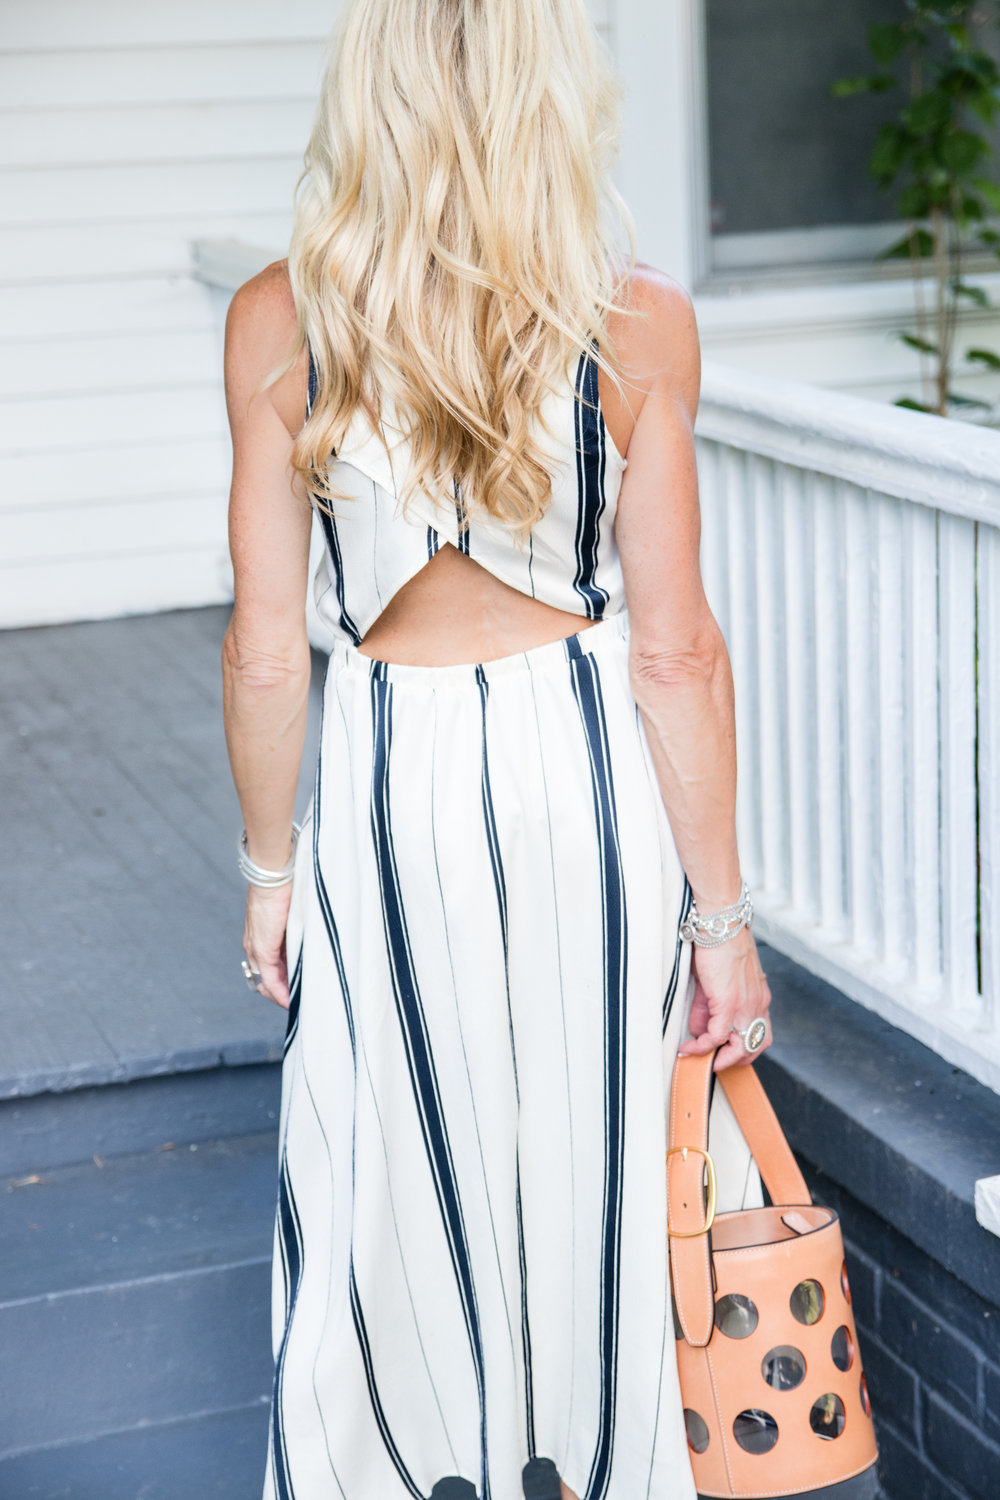 Loft dress with Tory Burch bag for July 4th outfit